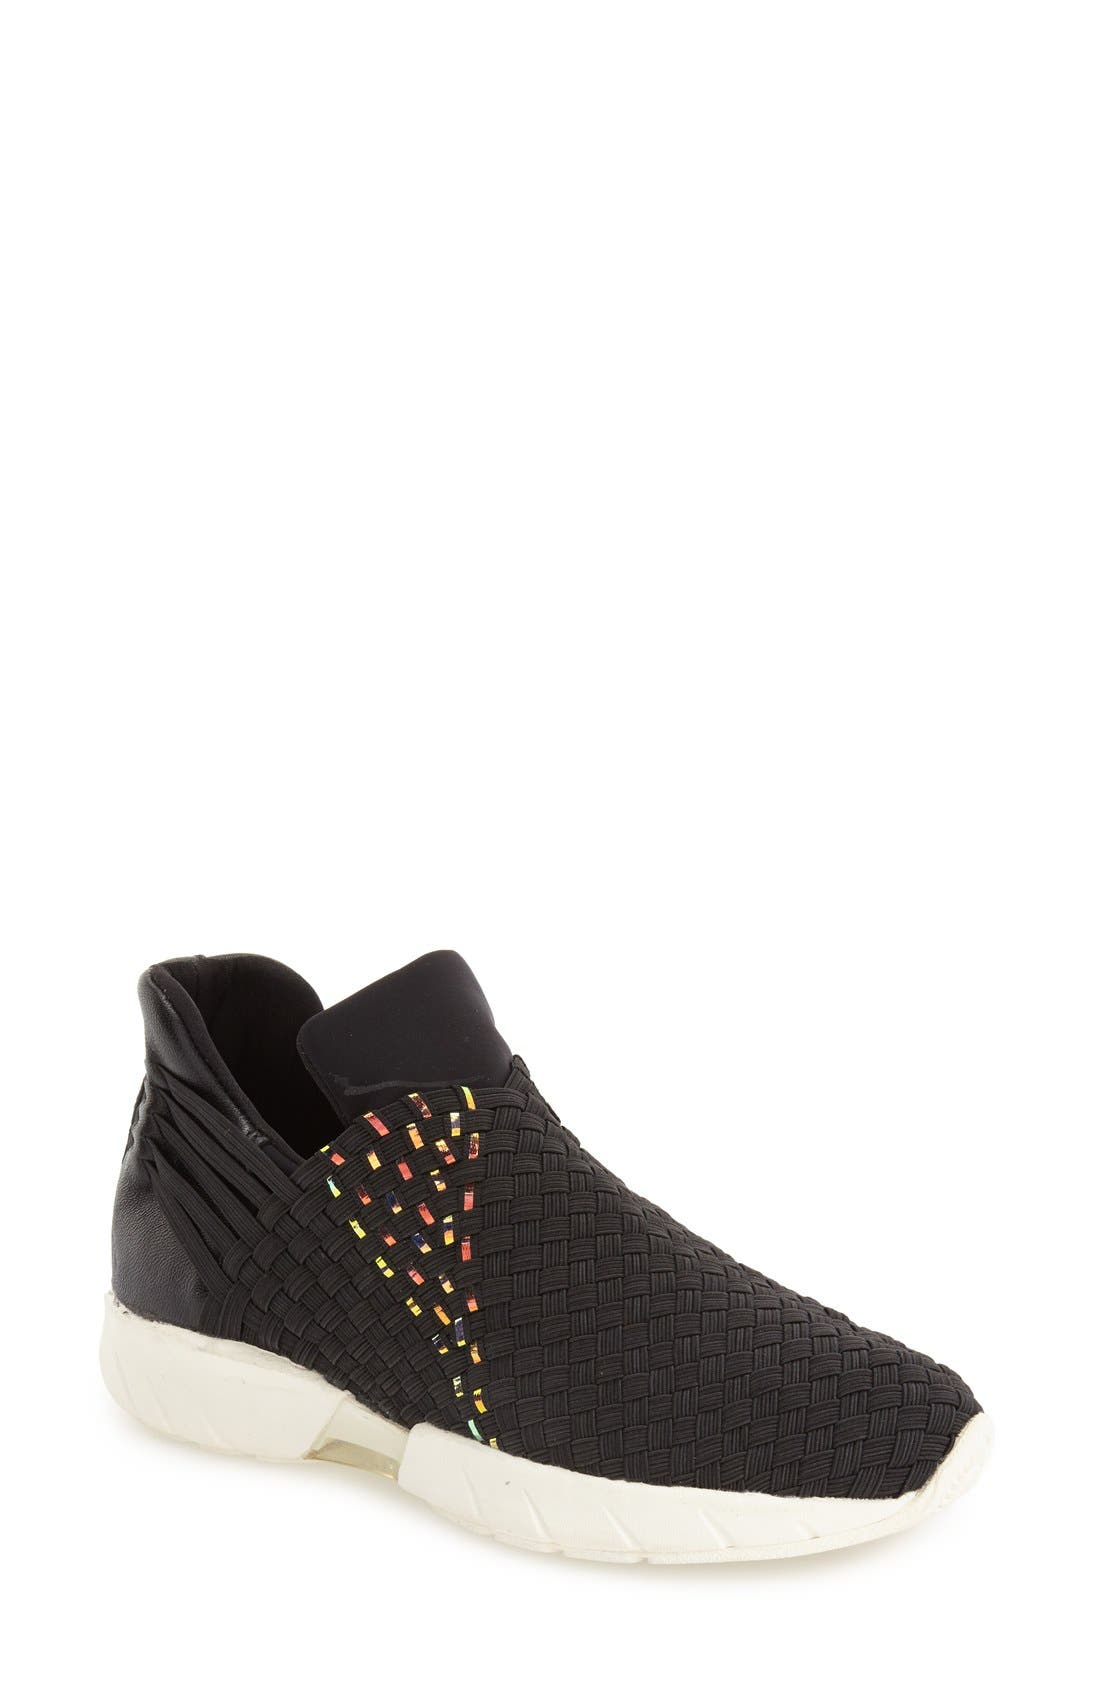 Alternate Image 1 Selected - bernie mev. 'Razer' Woven Slip-On Sneaker (Women)